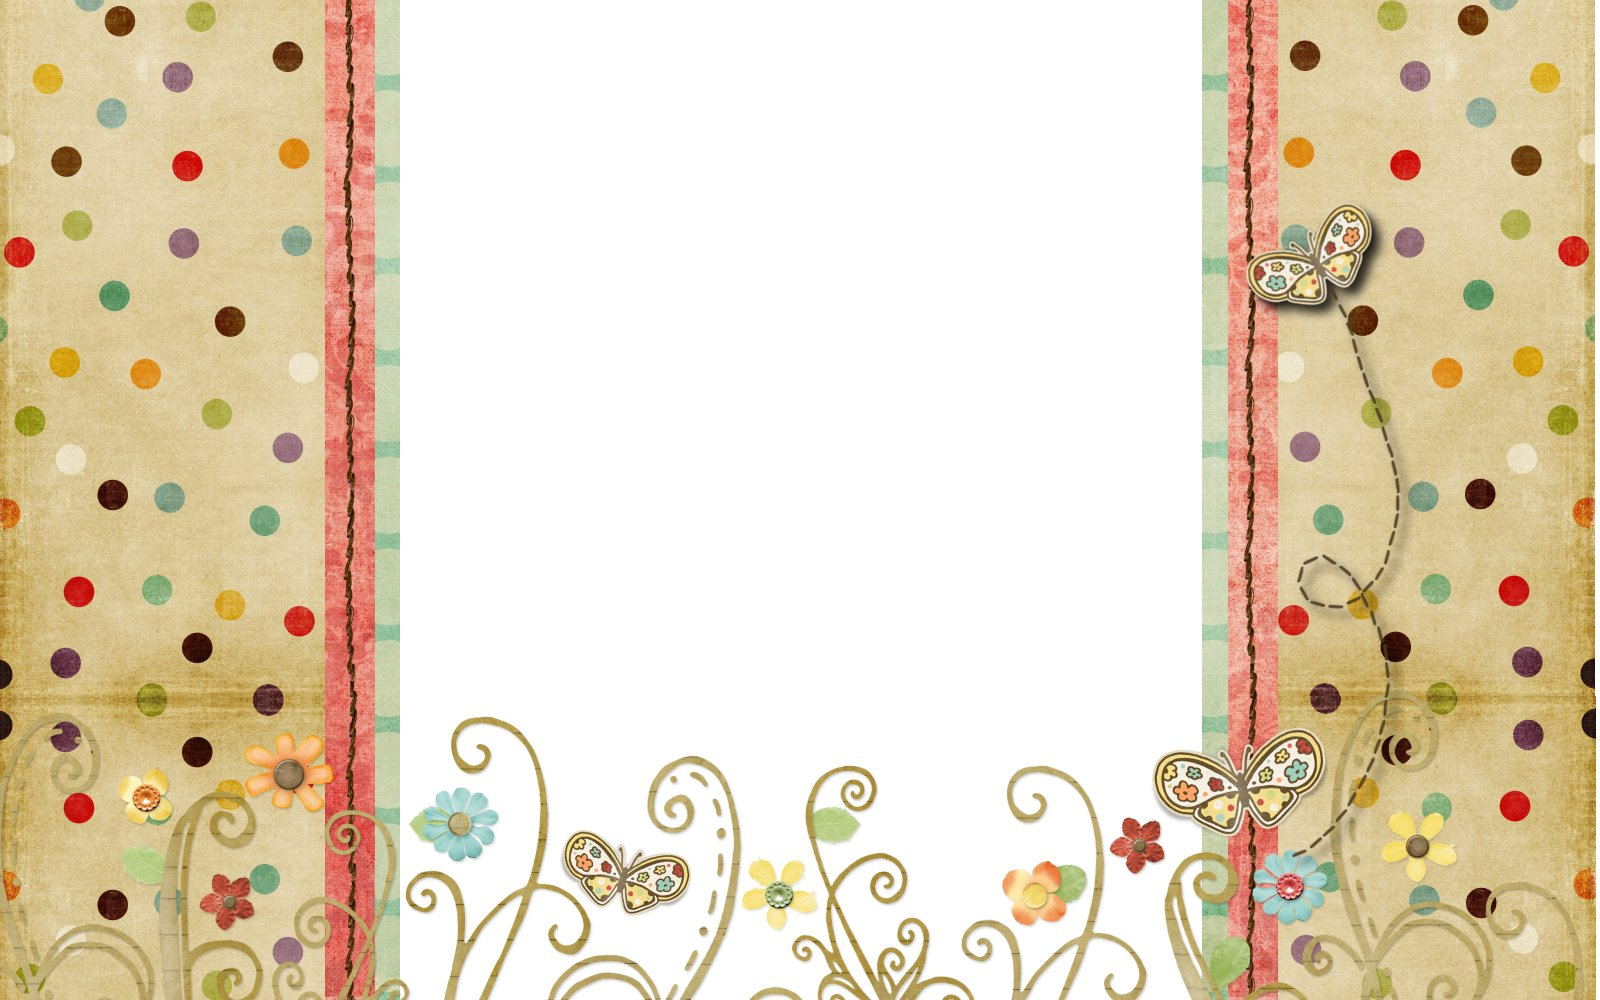 Yw blog background jpg 1600 1000 wallpaper for pc pinterest best scrapbook background scrap and scrapbook ideas